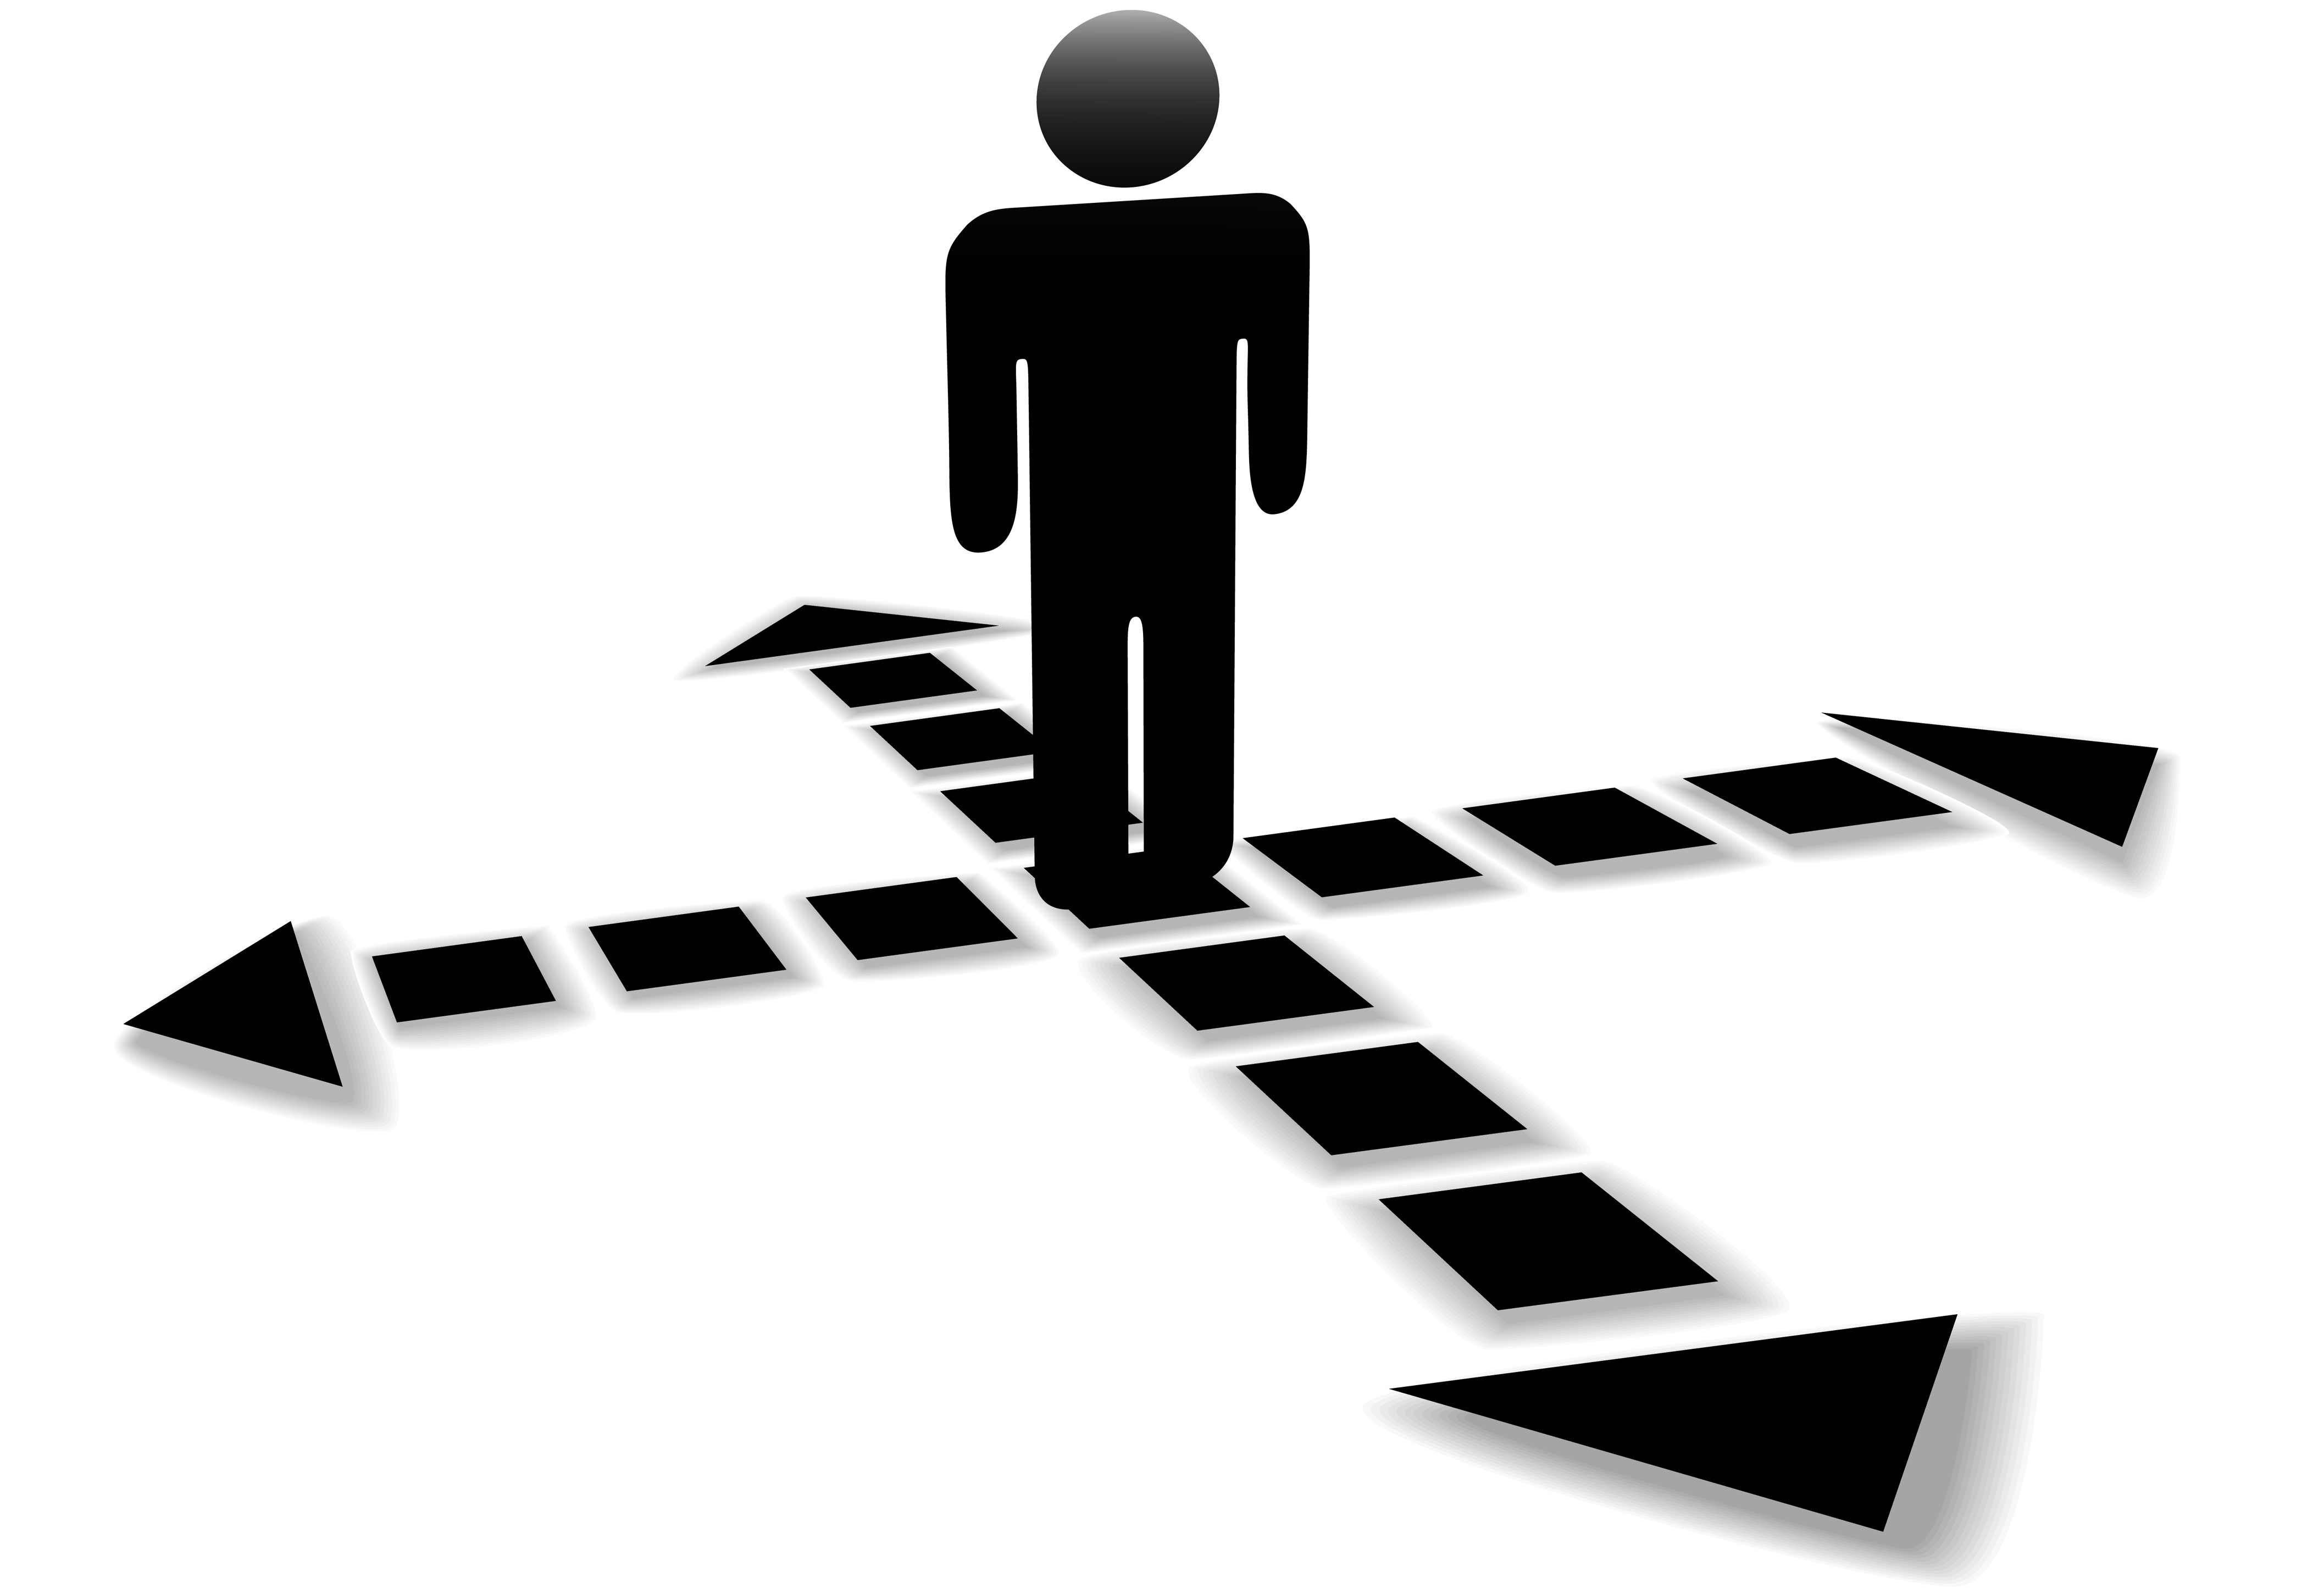 Pathway clipart multiple path Do found multiple I the